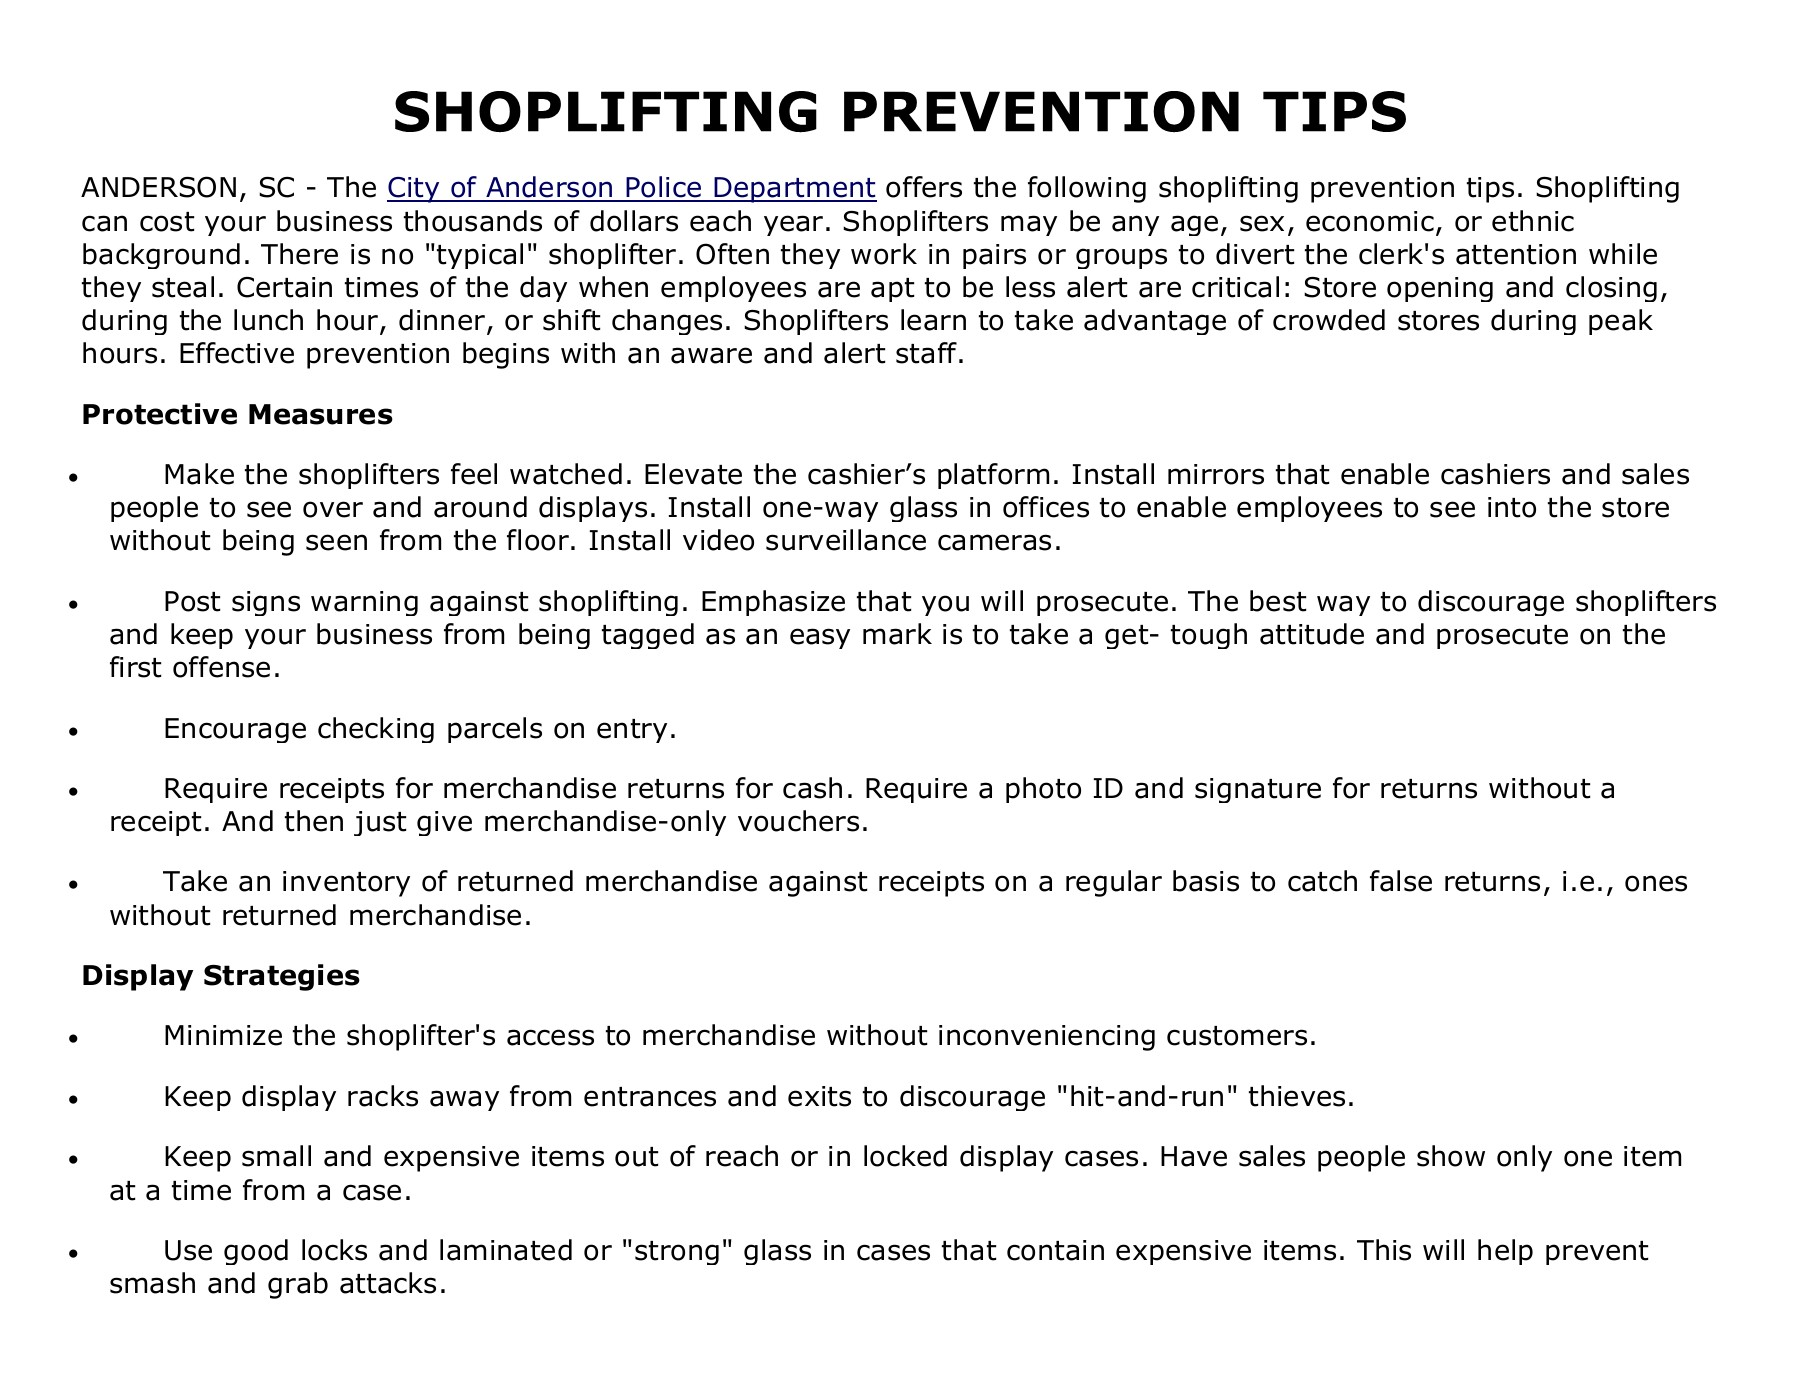 SHOPLIFTING PREVENTION TIPS - ANDERSON PD